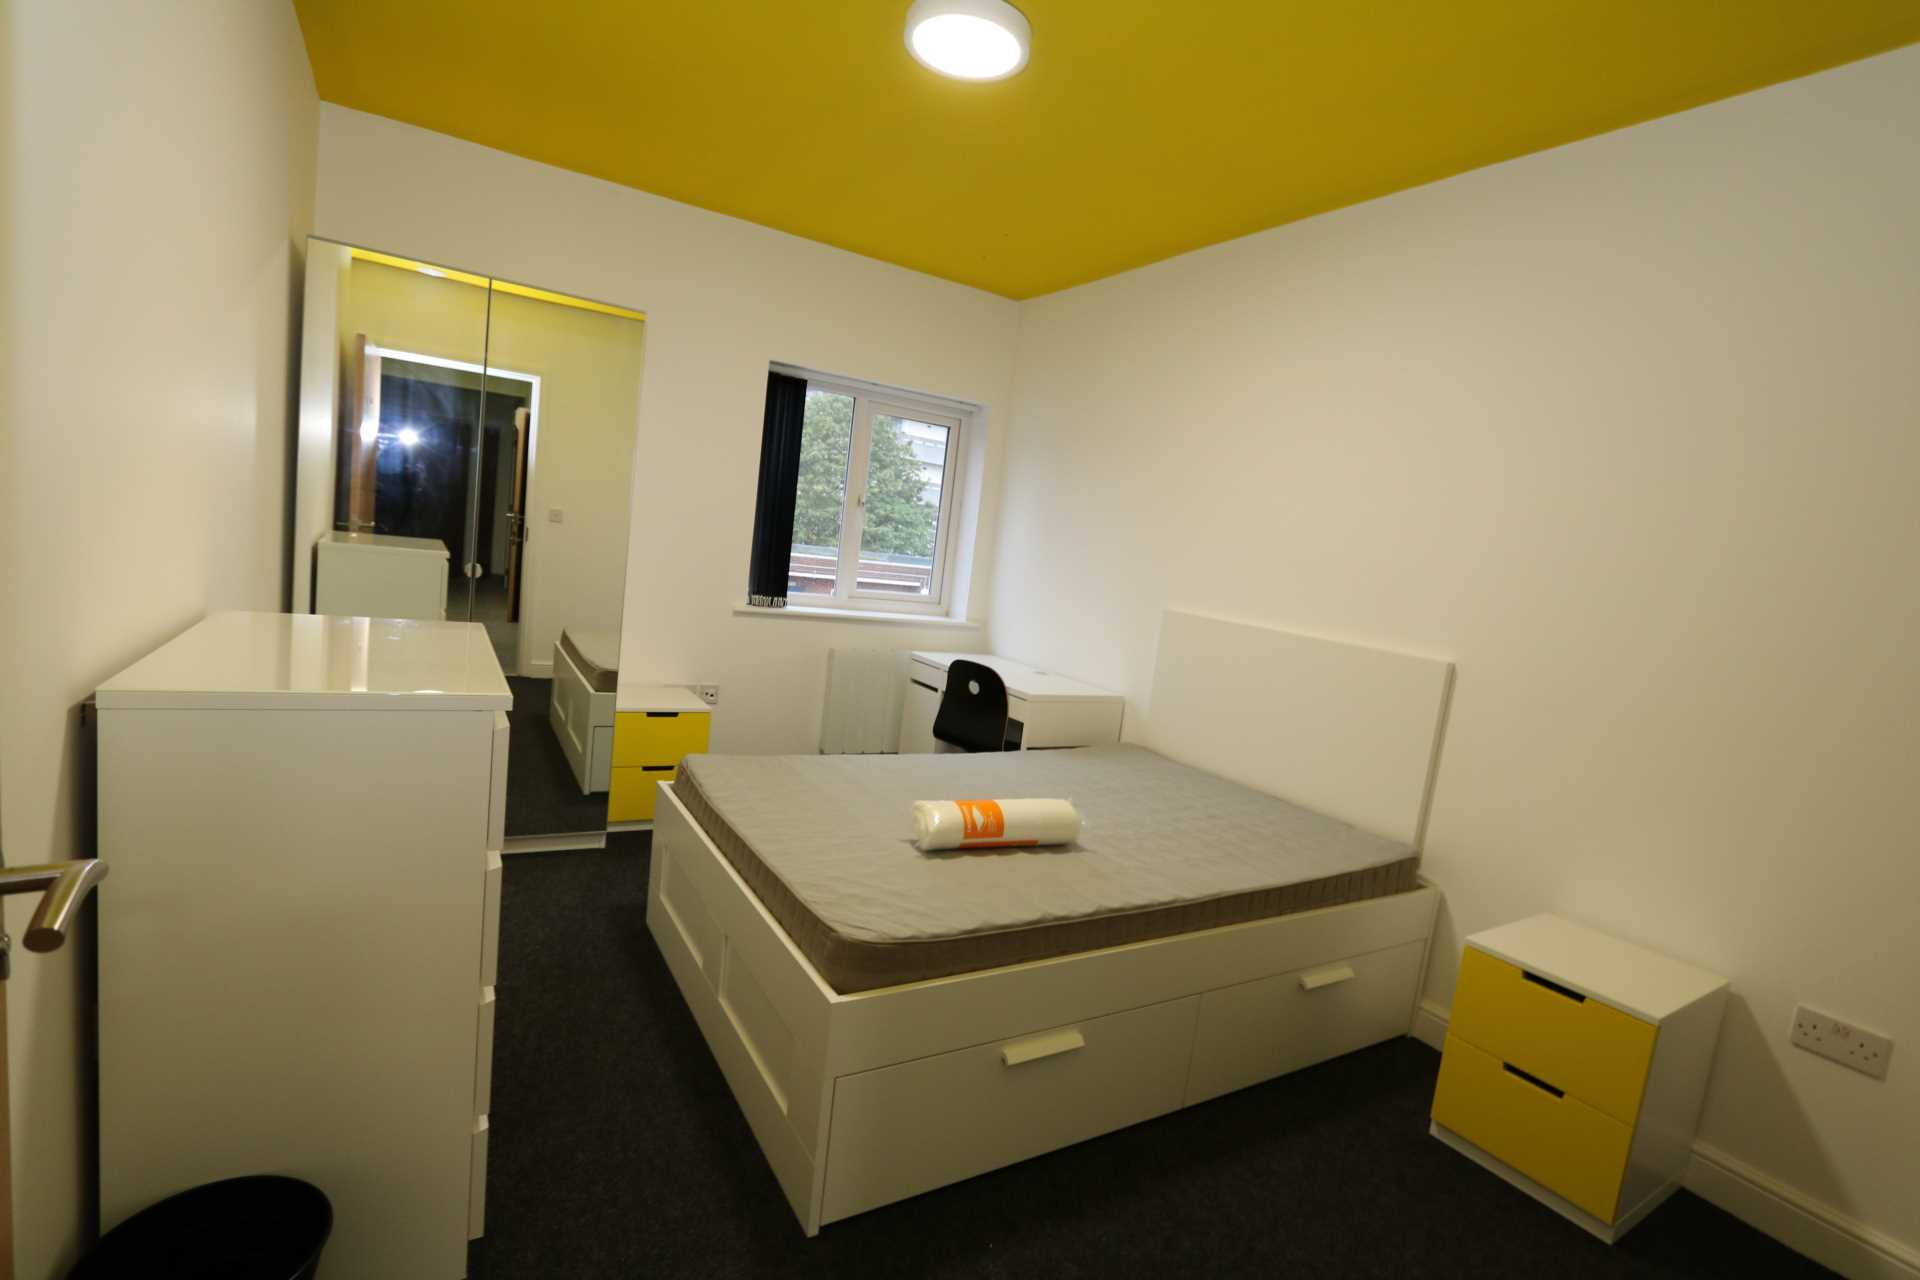 Room 9B Kings Court new development fully furnished student accommodation all bills included - NO FEES, Image 1